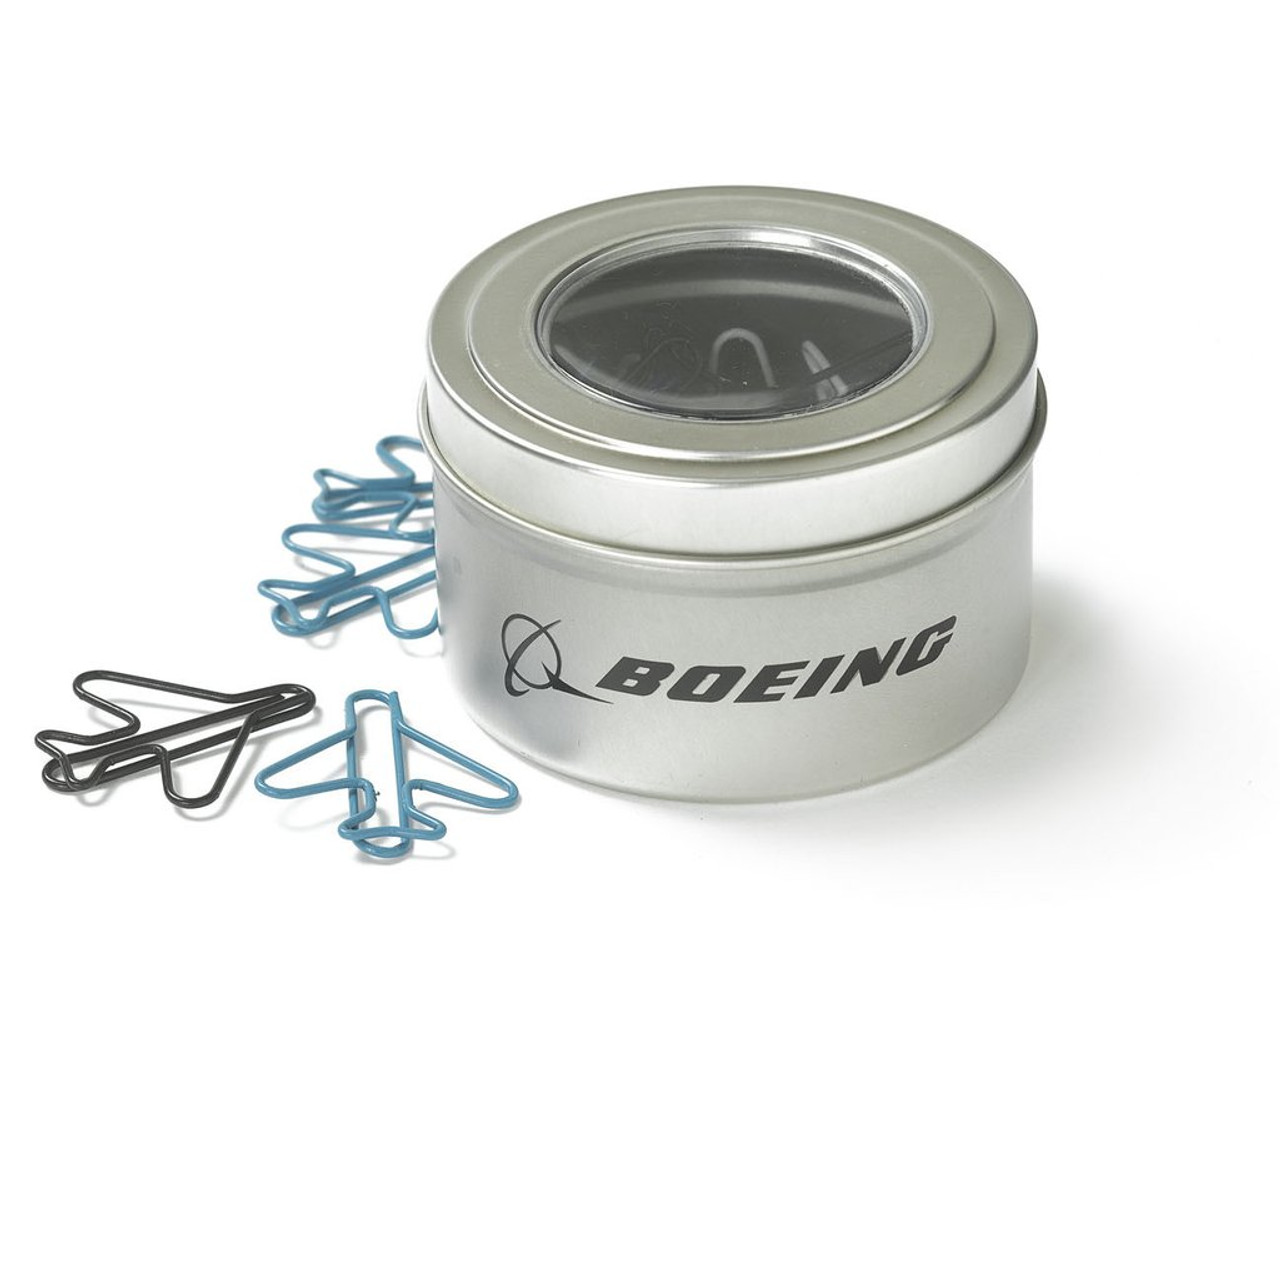 Boeing Plane Paper Clips